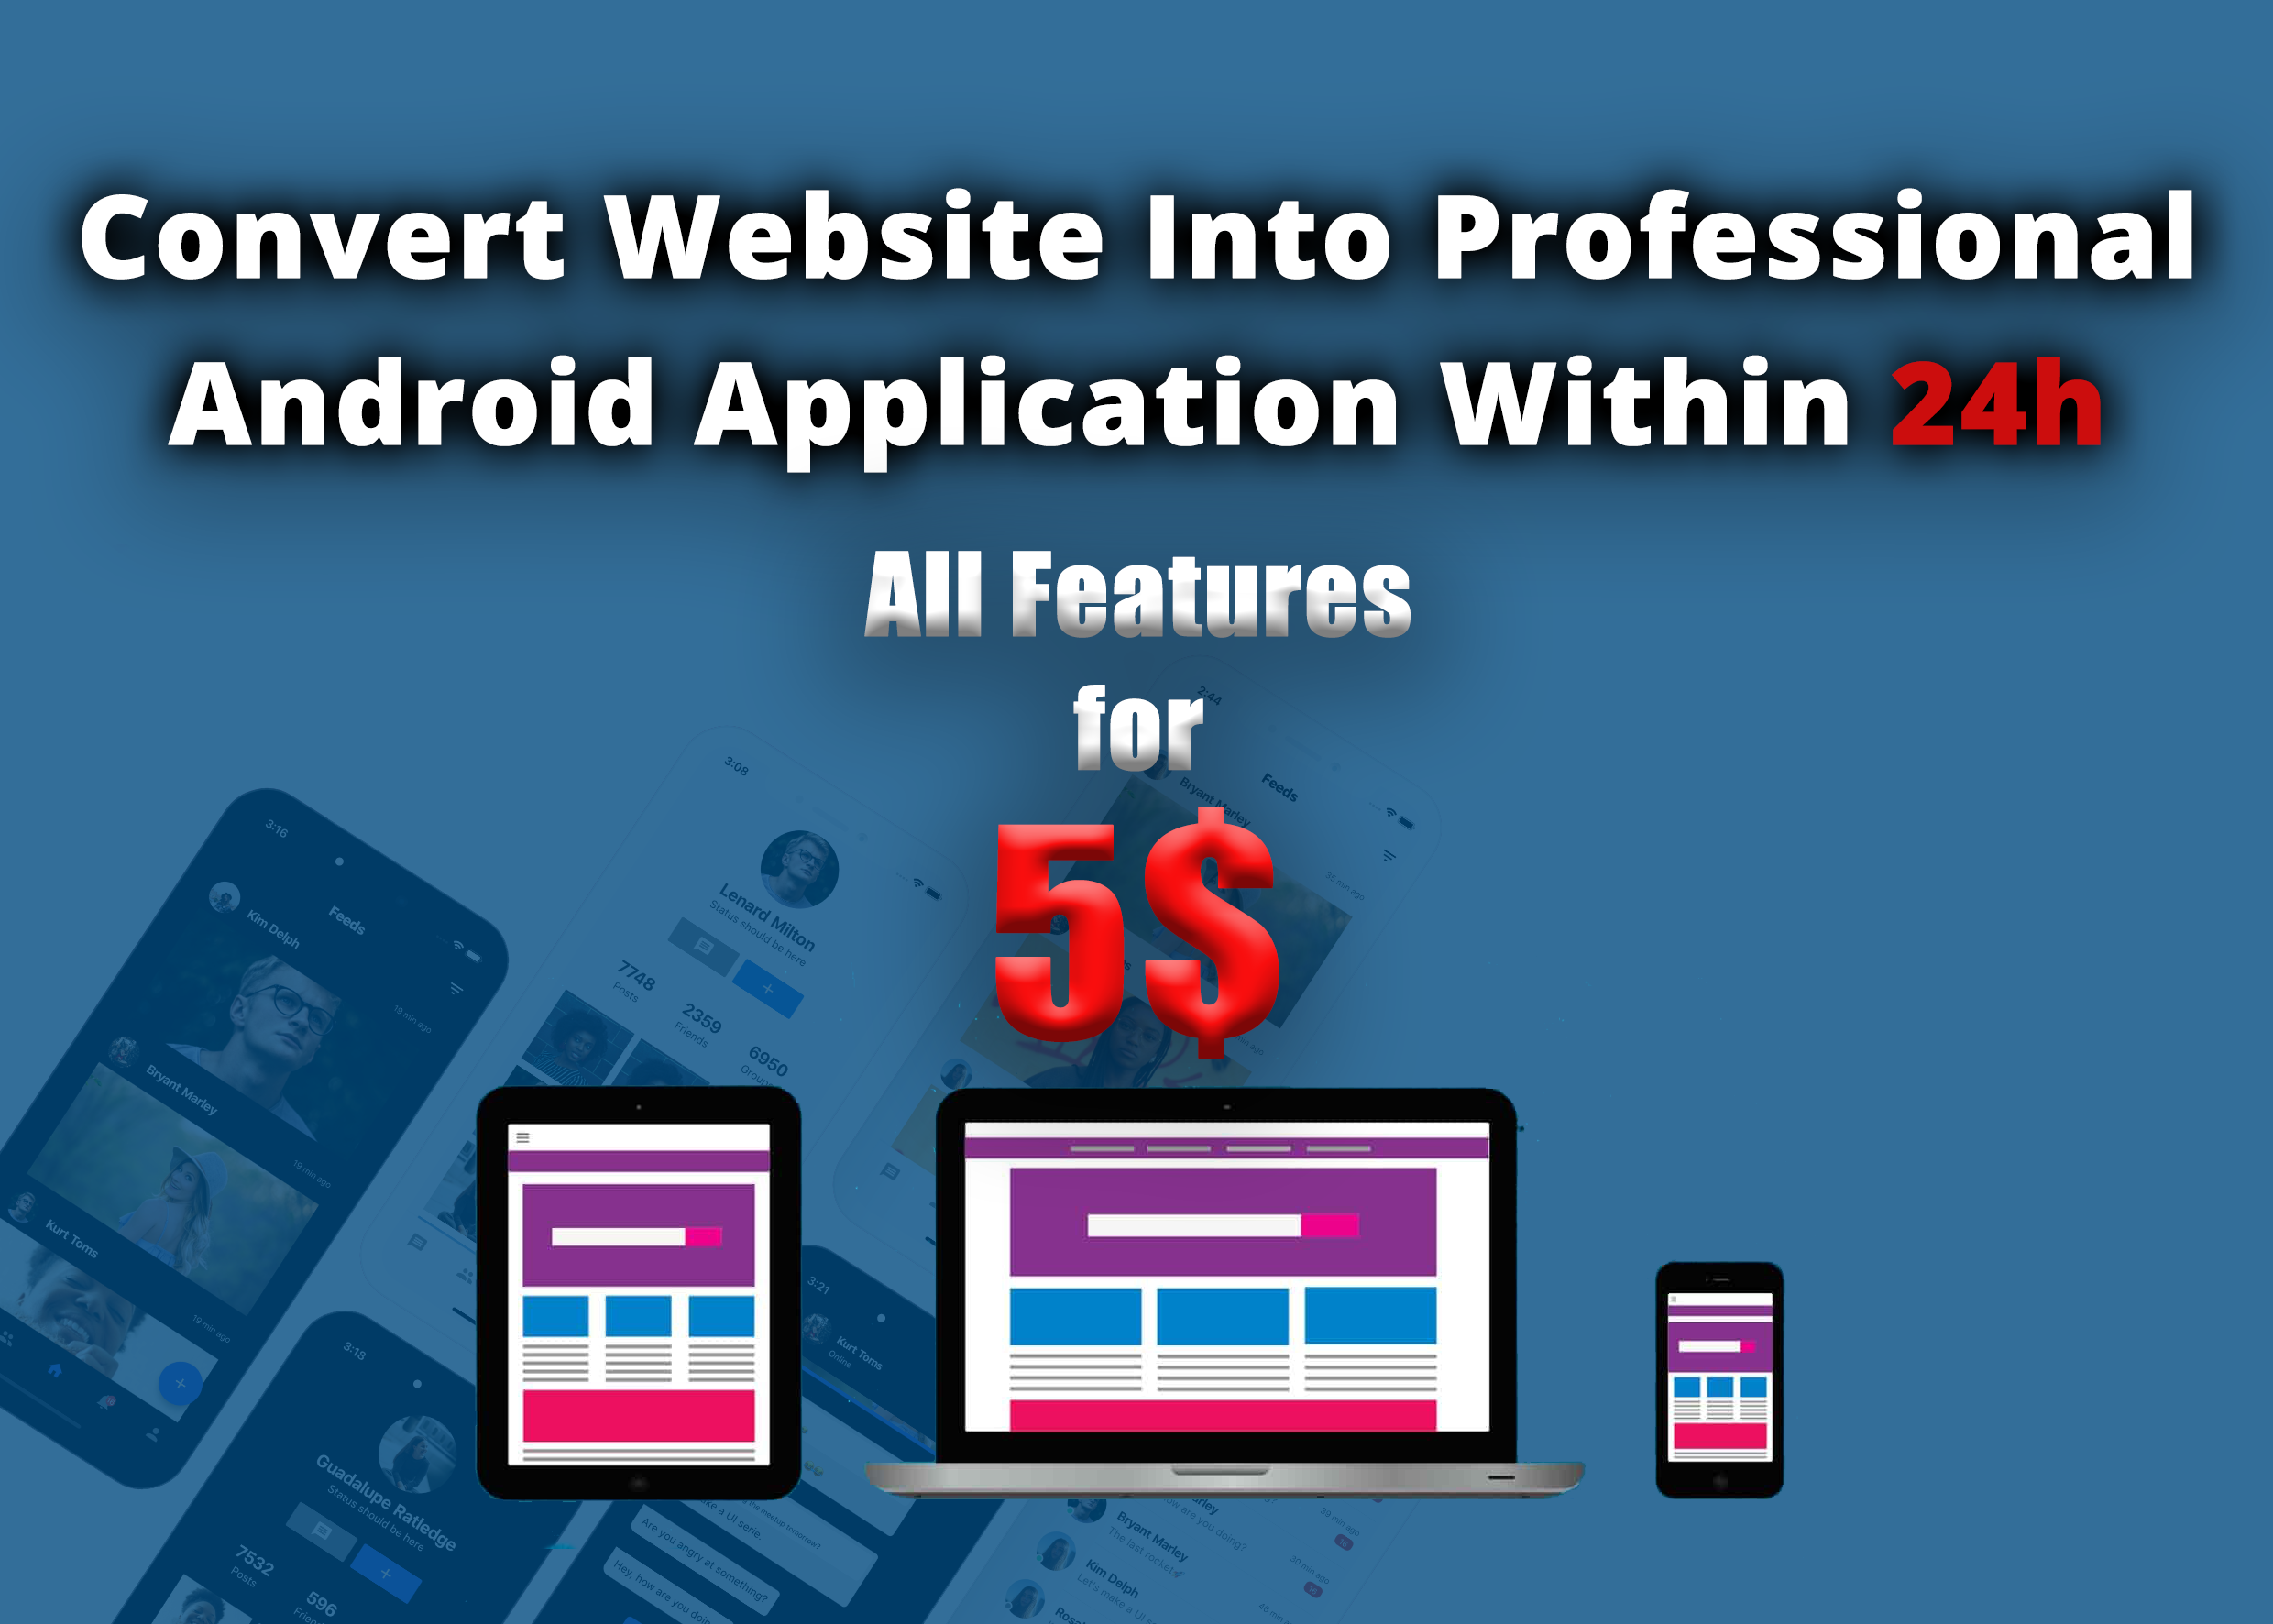 Android application For Your Website With Push Notifications and Admobs